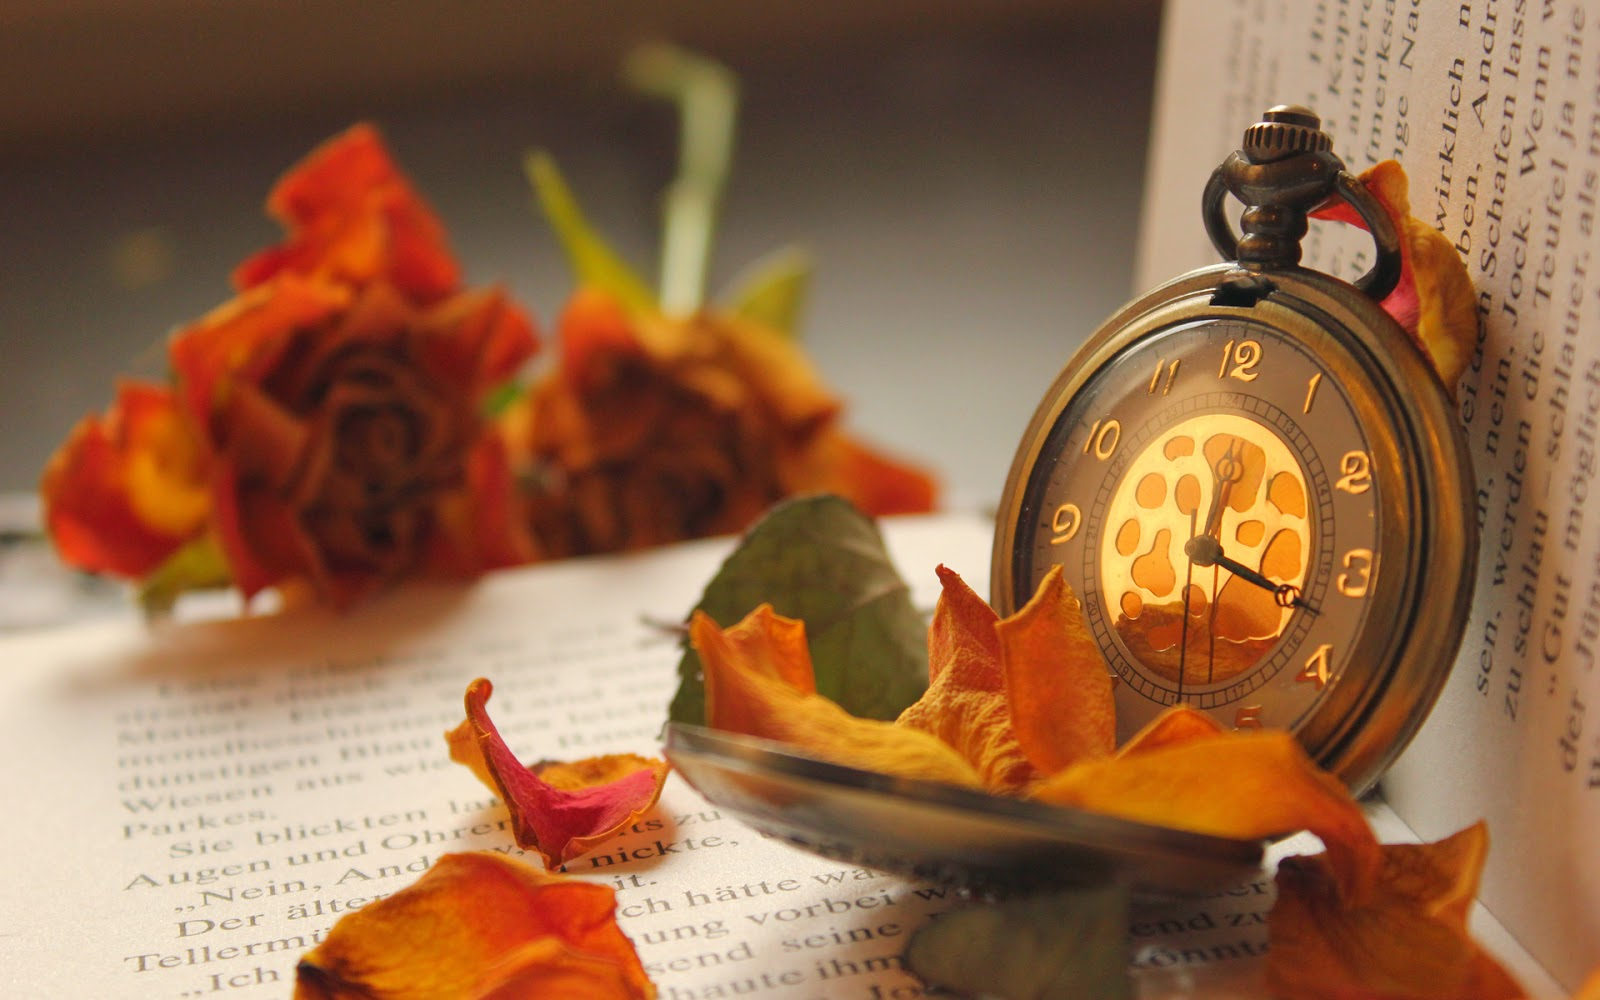 Beautiful Book Rose and Watch Wallpaper